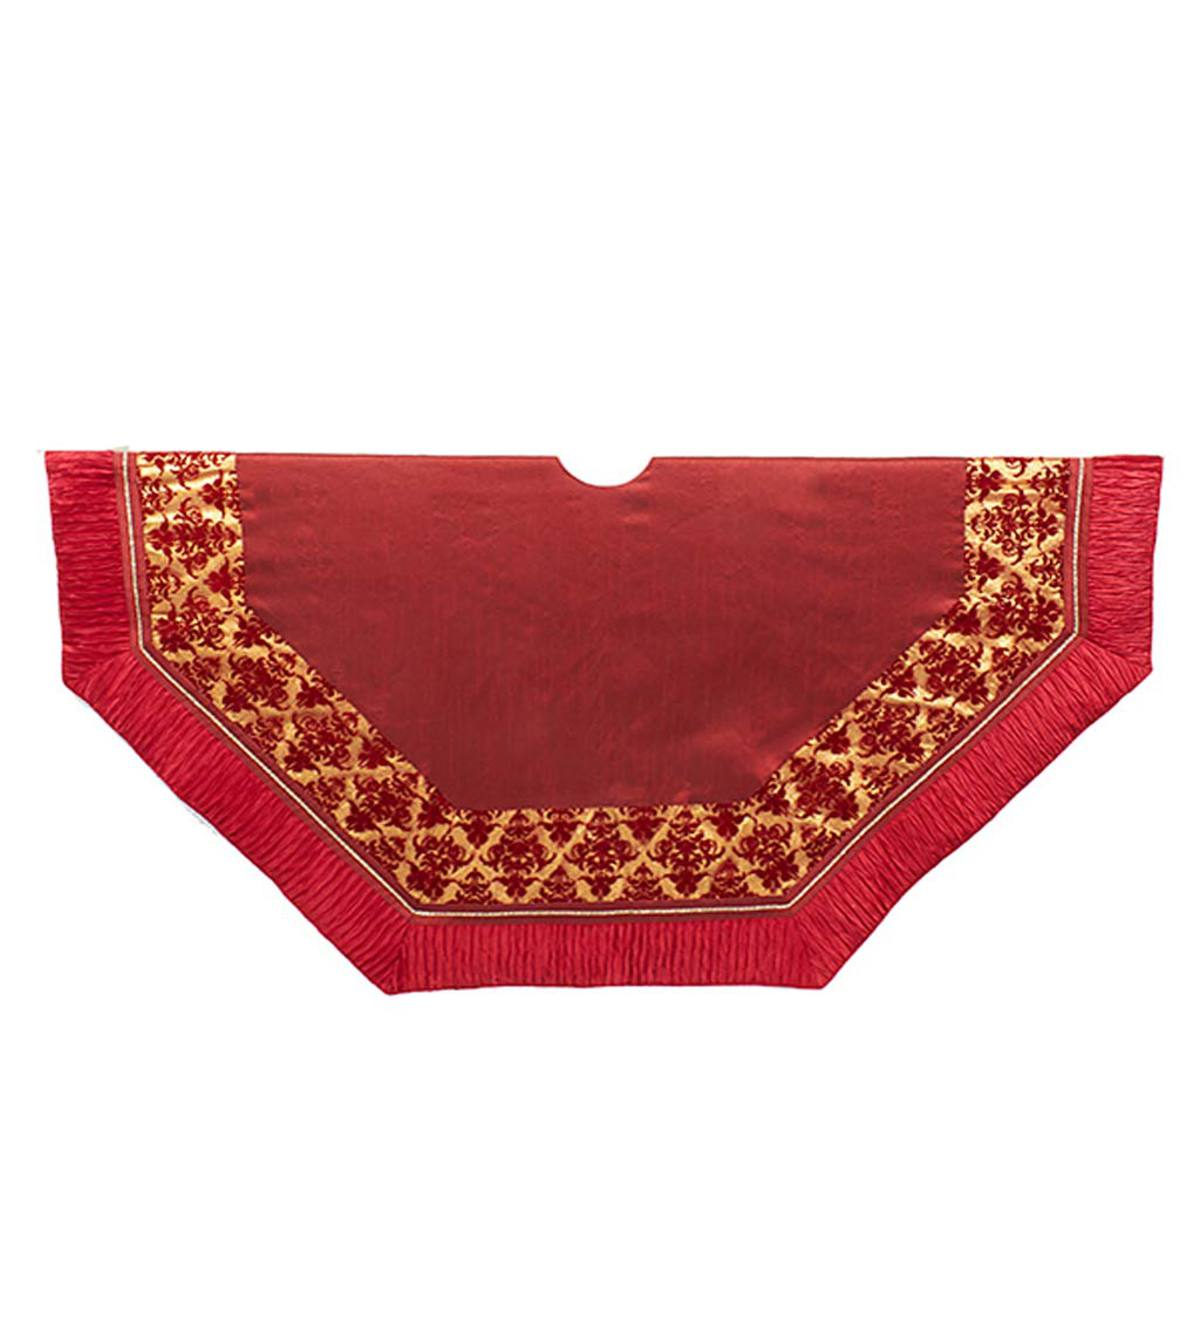 Burgundy and Gold Tree Skirt